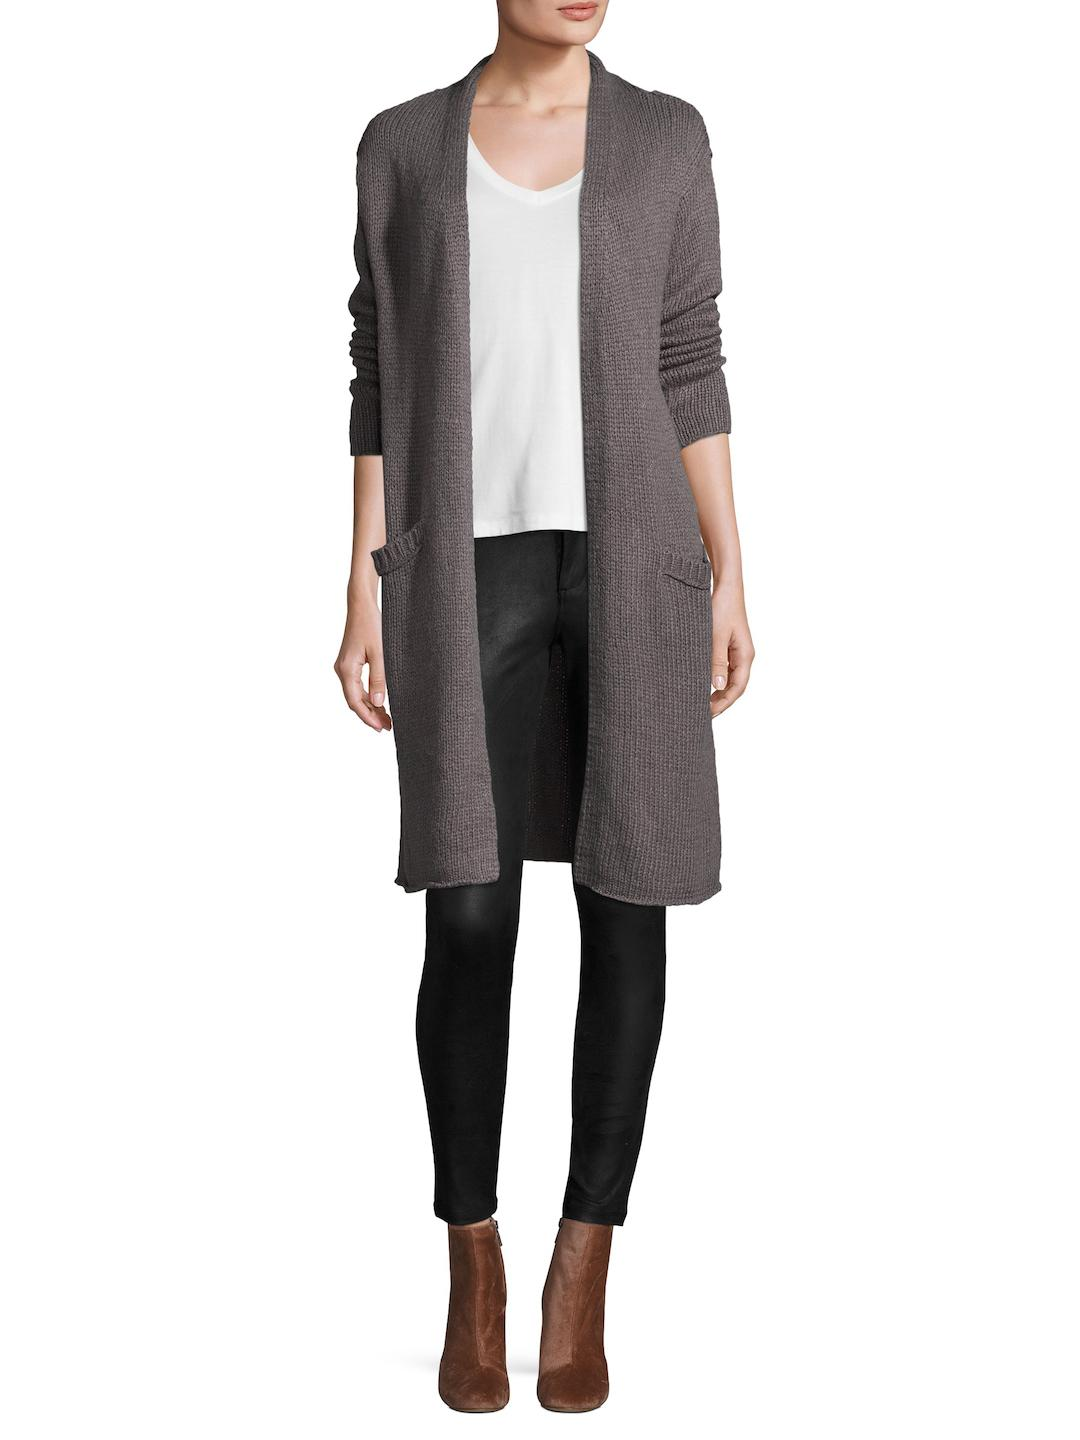 Velvet by graham & spencer Wool-blend Duster Cardigan in Brown | Lyst